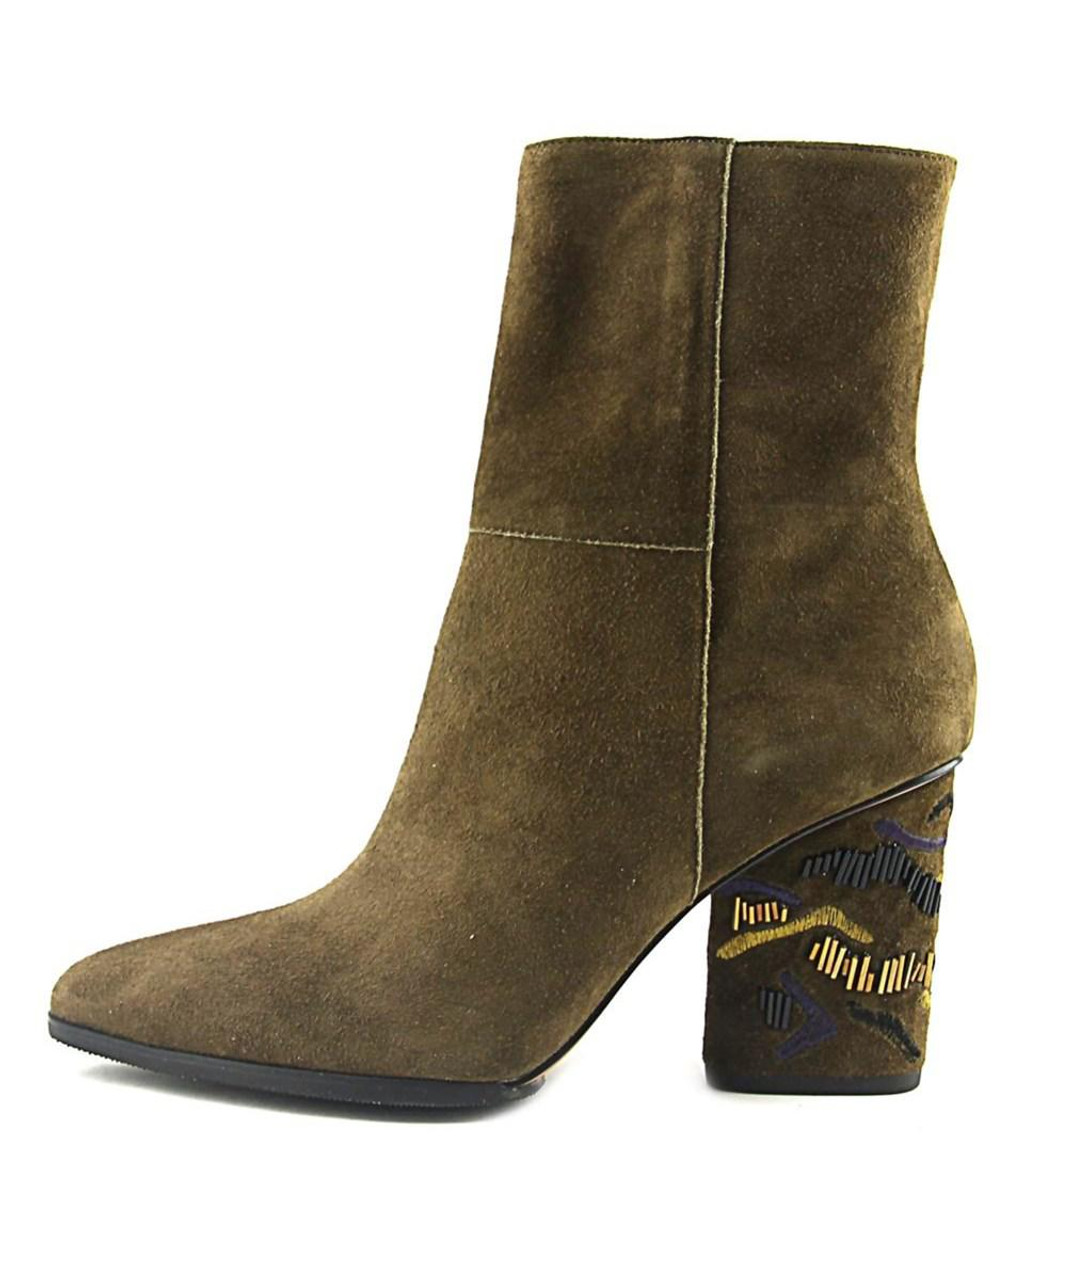 588aebd9c35 Donald J Pliner Womens Vantisp Leather Pointed Toe Mid-Calf Fashion  Boots~pp-00294f34